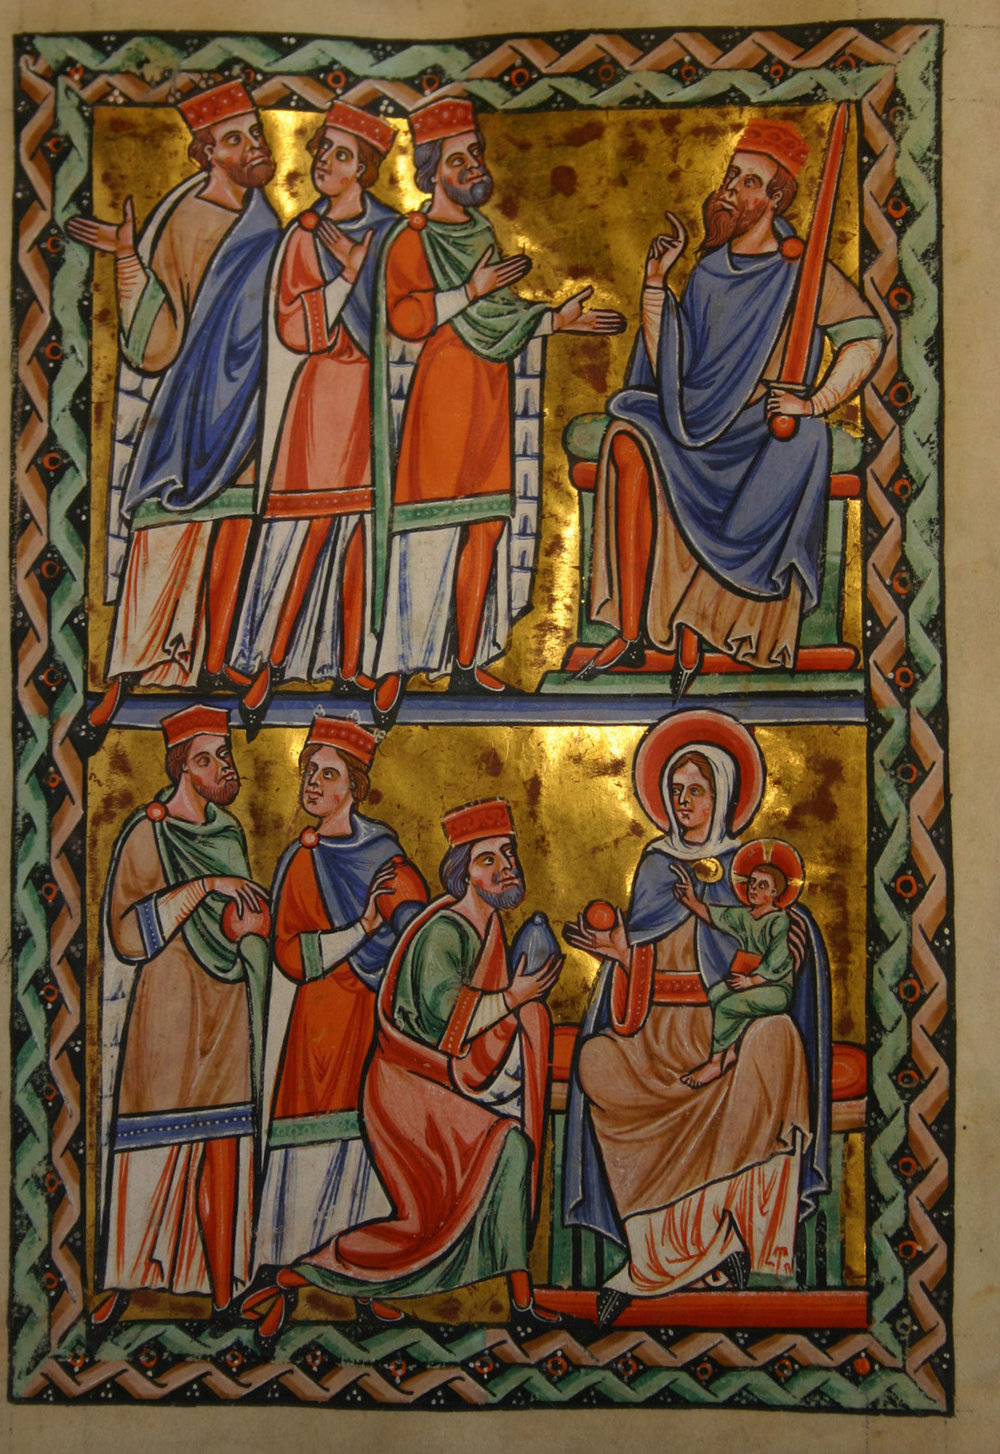 This page from  The Psalter of St. Louis  (circa 1191-1212) alludes to two very different responses to the gift of Jesus.  Above, Herod (right) talks with the magi and prepares to attempt to kill Jesus.  Below, the magi bring gifts to Jesus, showing a much more appropriate sense of awe and appreciation for the gift of Jesus.  ( See Wiki Commons for more information about the image. )